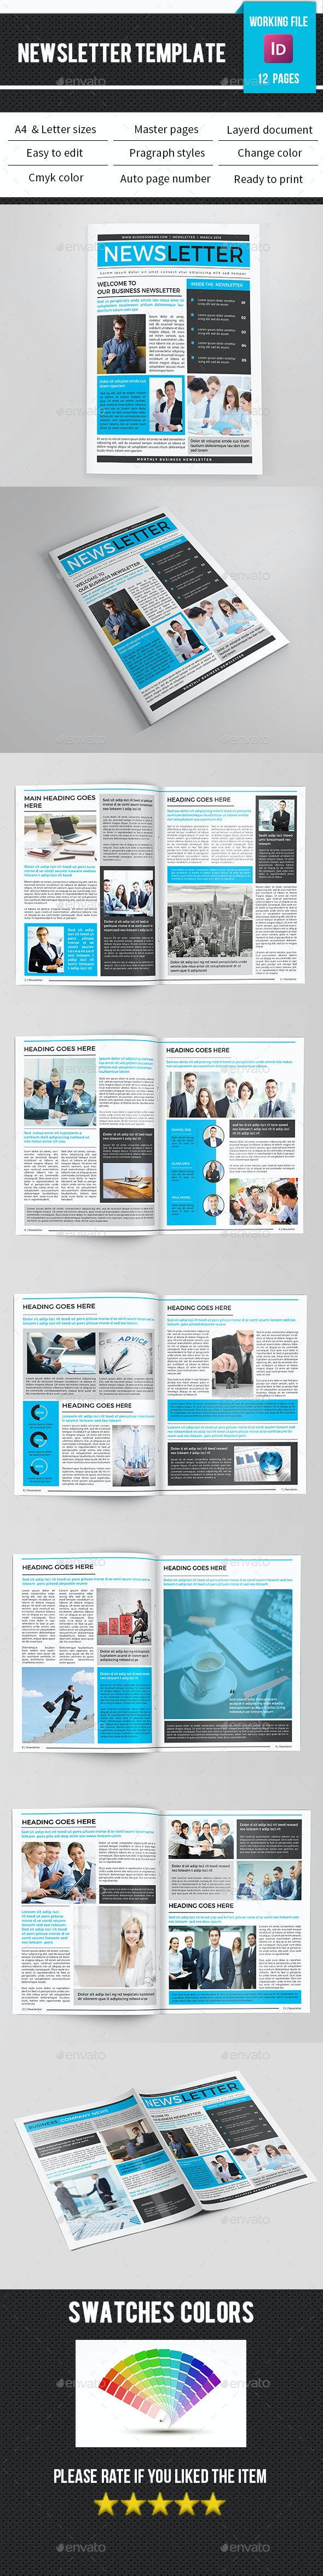 Corporate Newsletter-V10 - Newsletters Print Templates